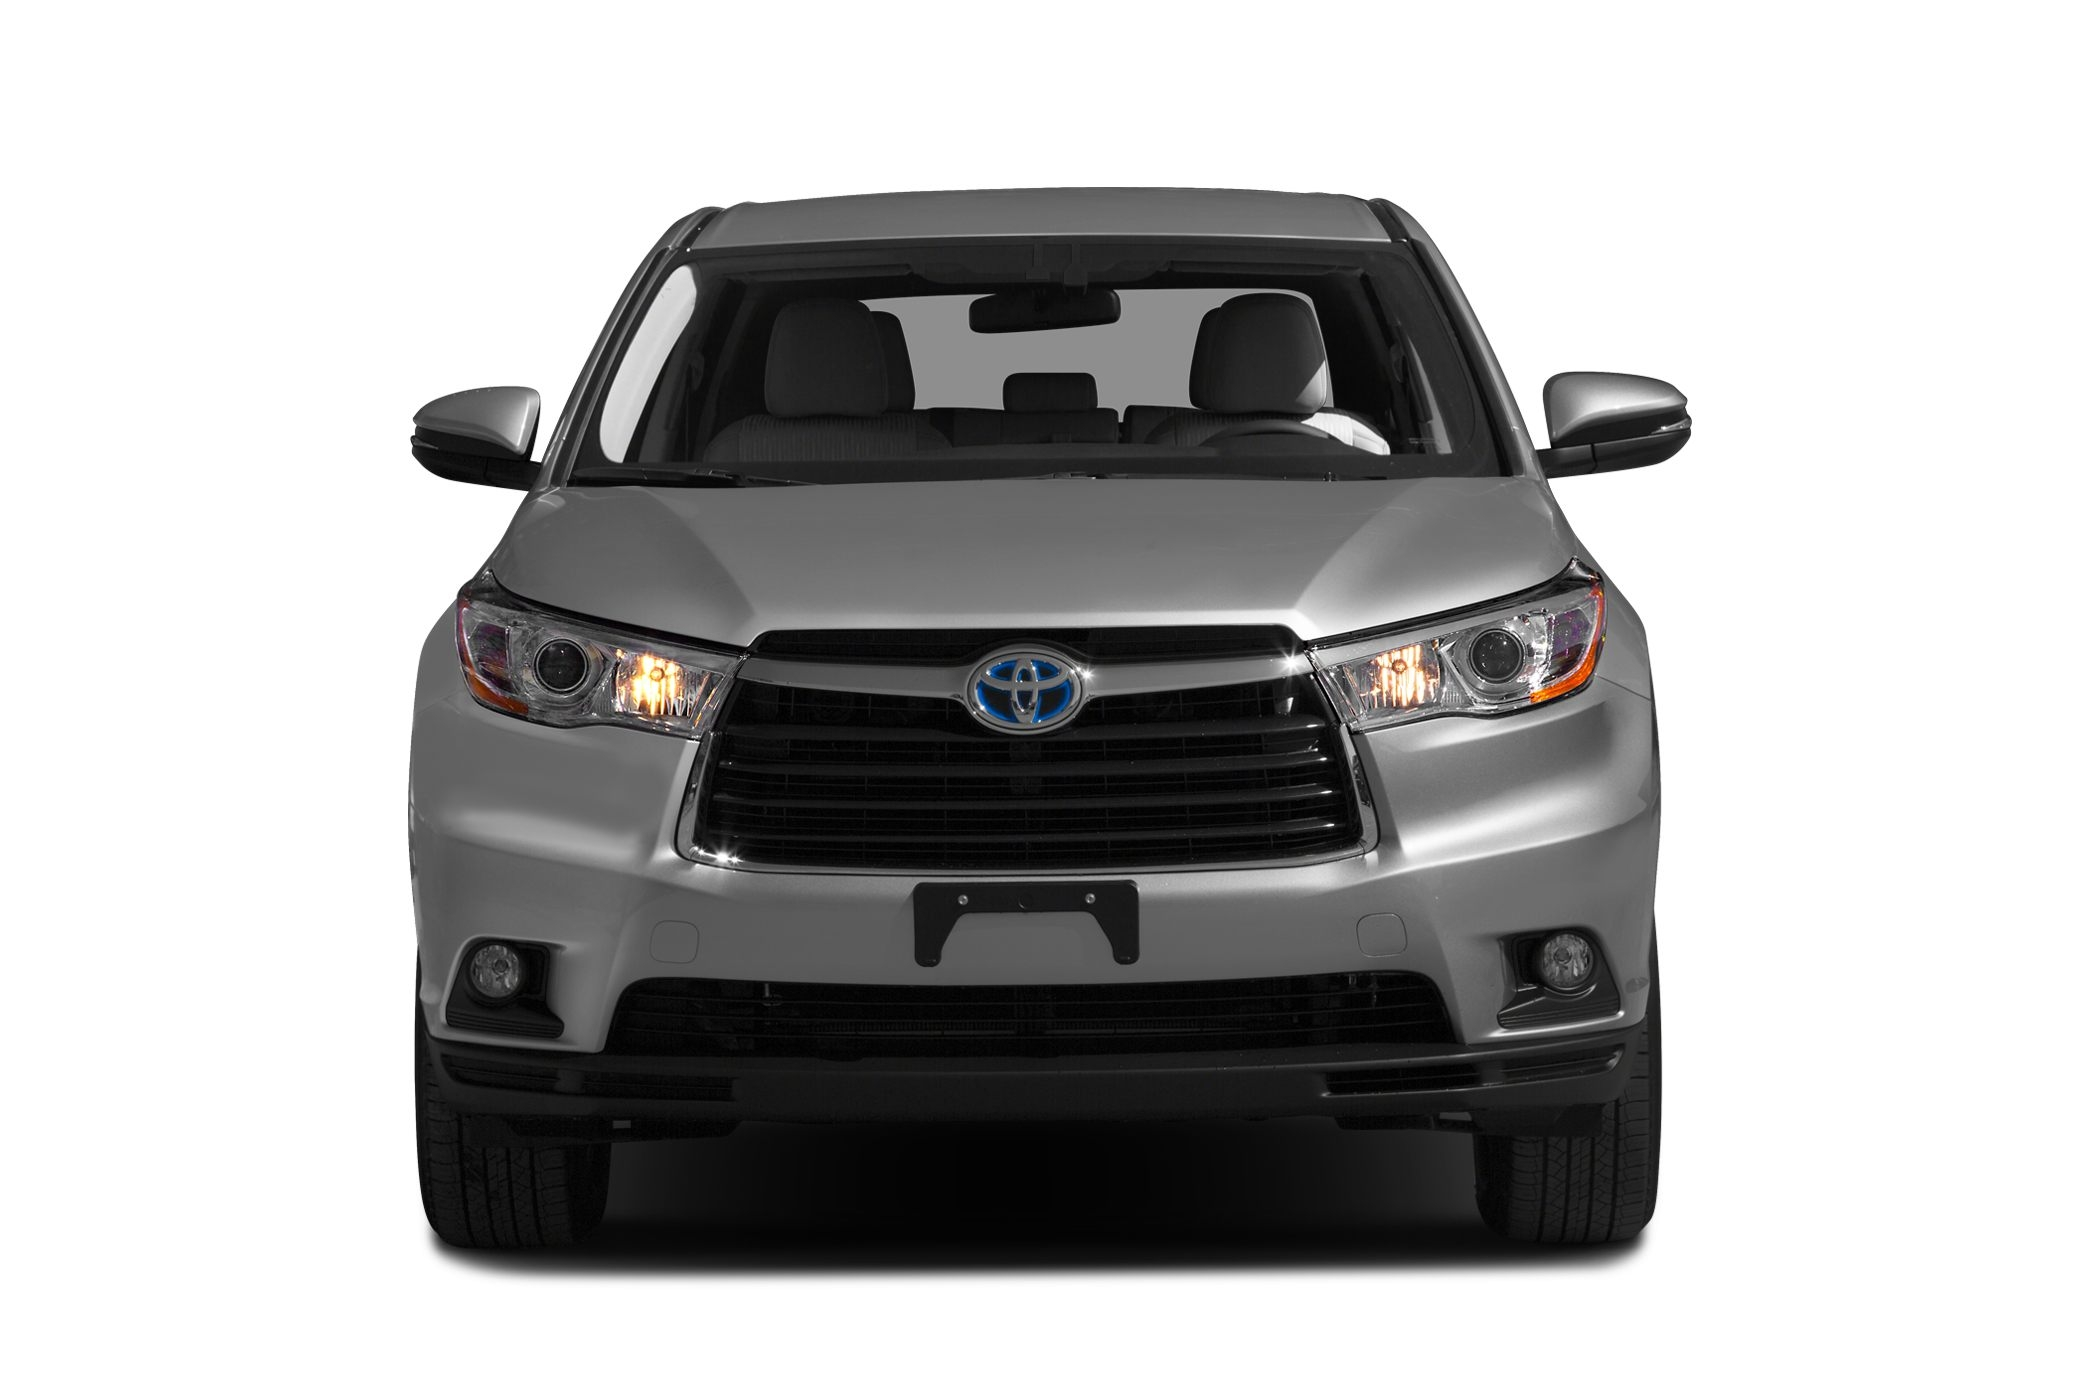 new 2015 toyota highlander hybrid price photos reviews safety 2015 highlander invoice price